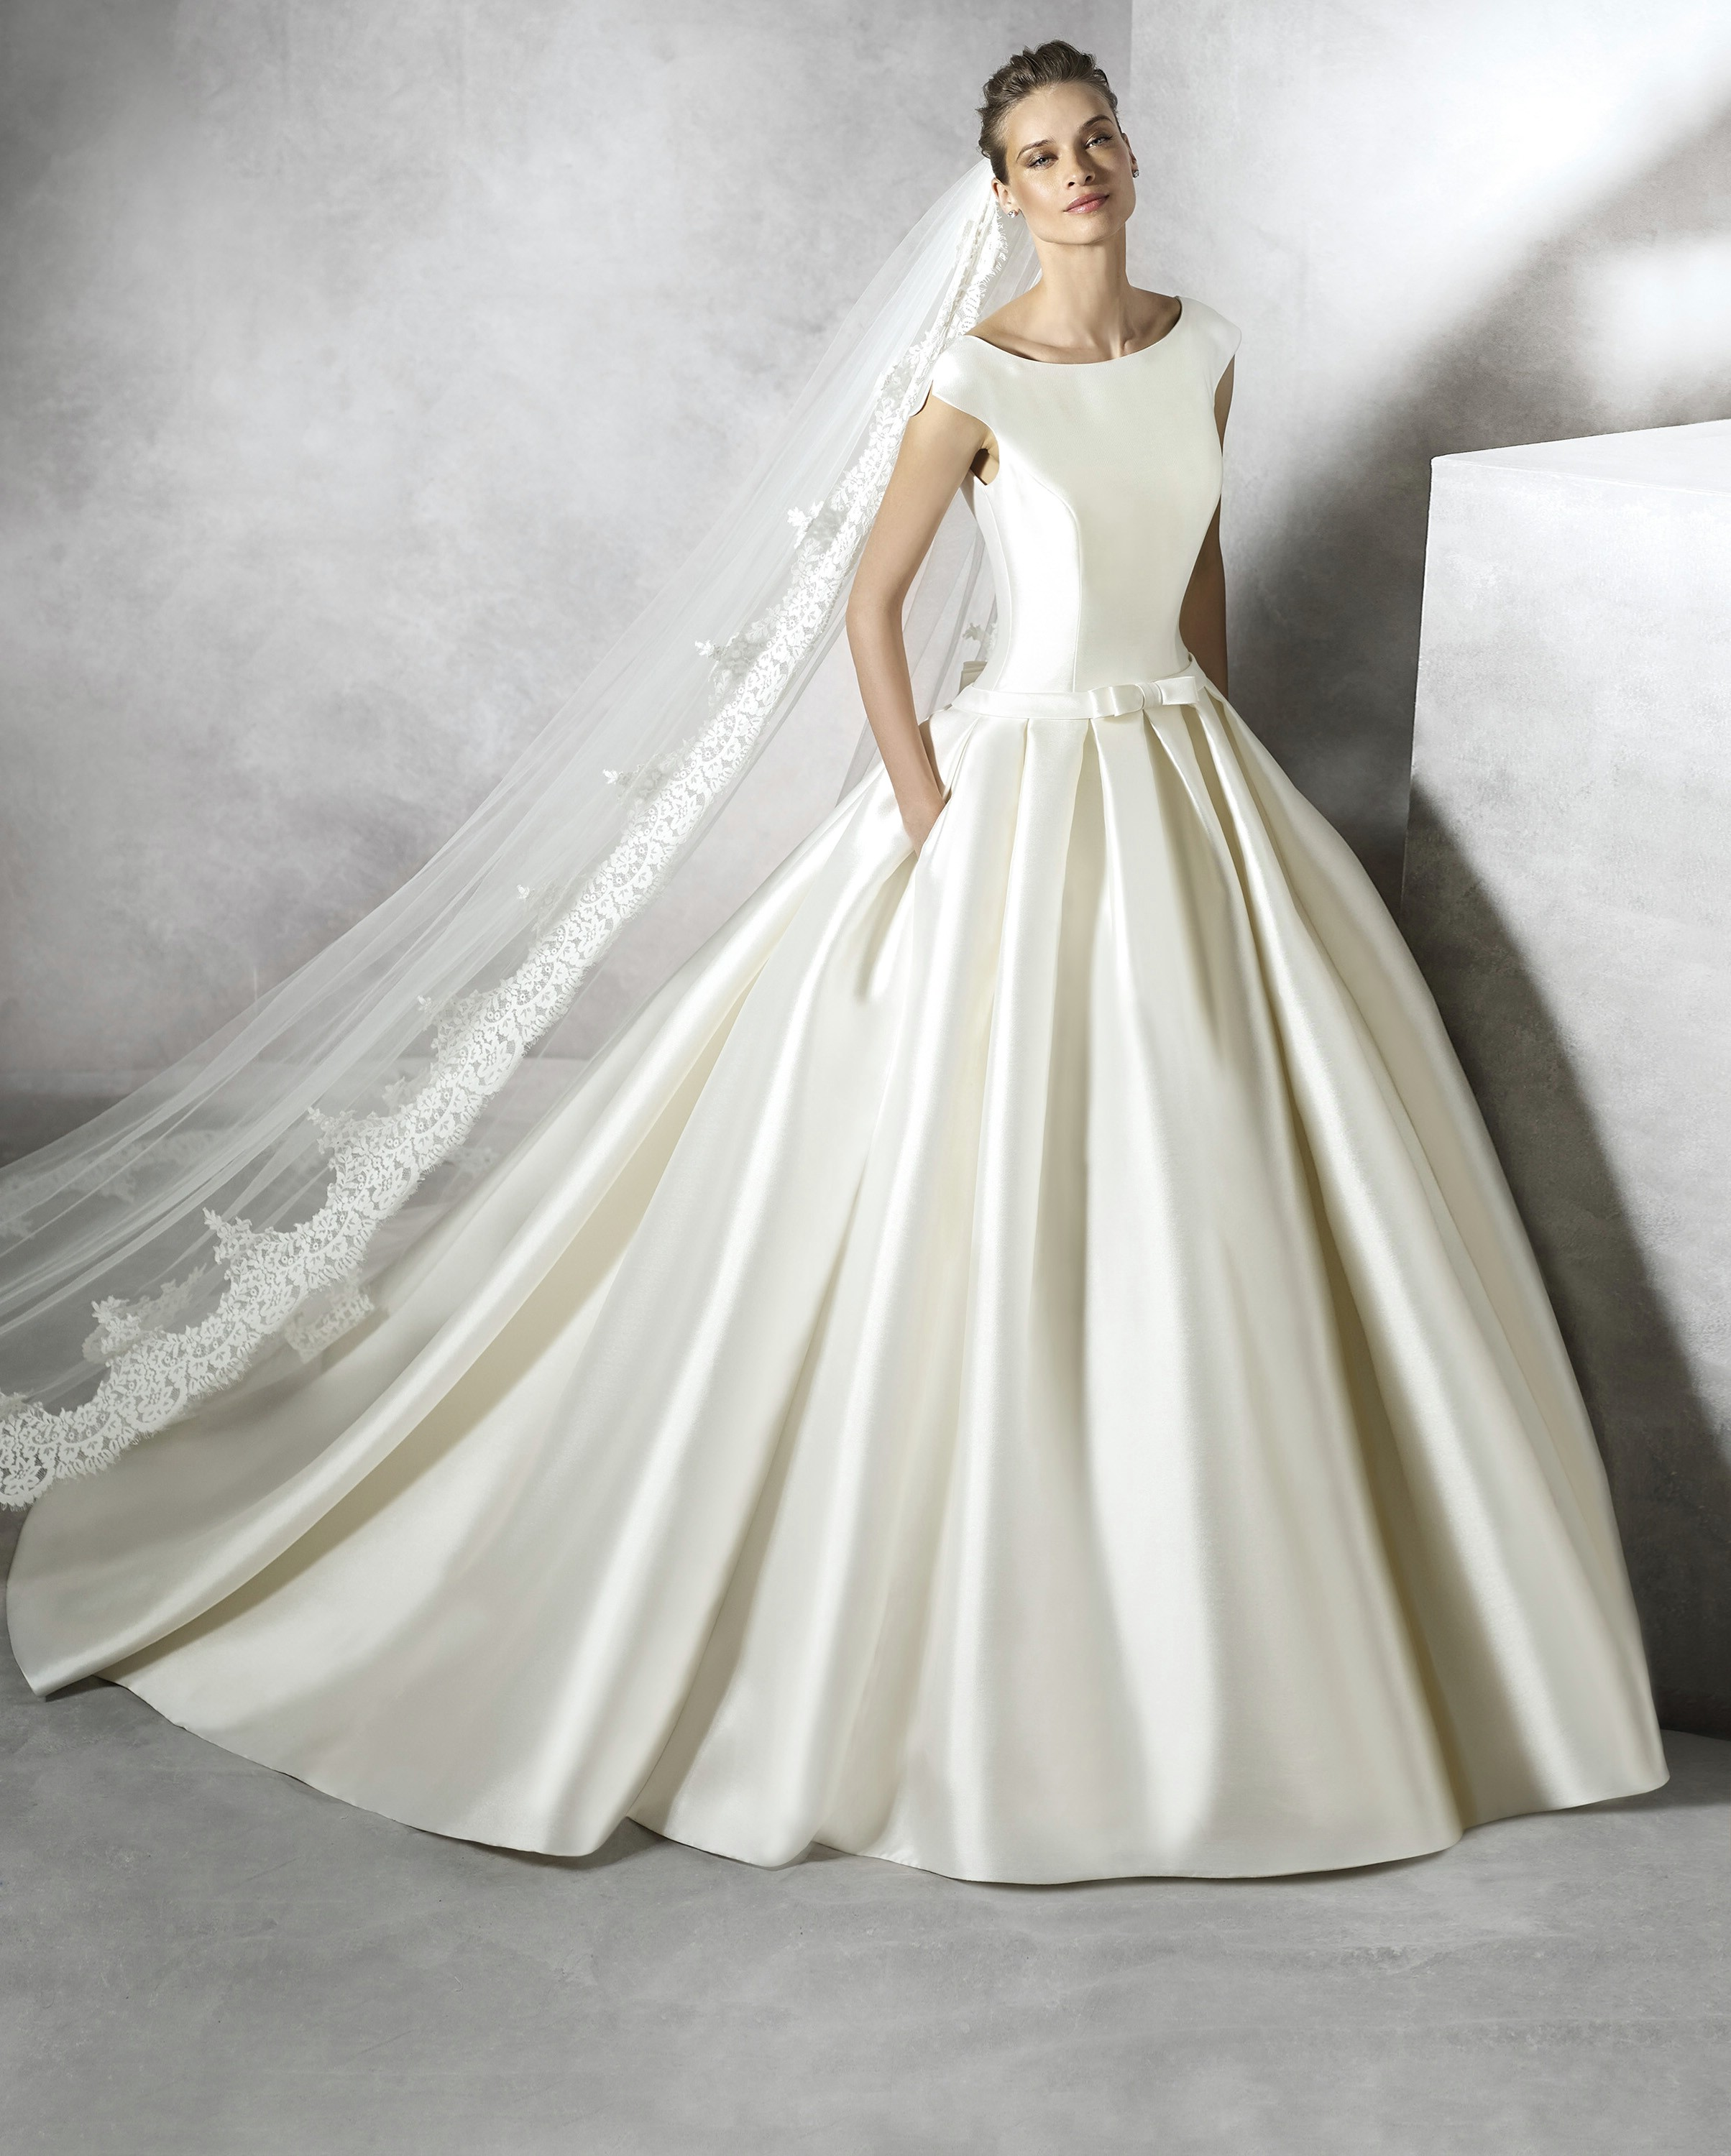 Dress Gowns For Weddings: Mia Sposa Bridal Newcastle